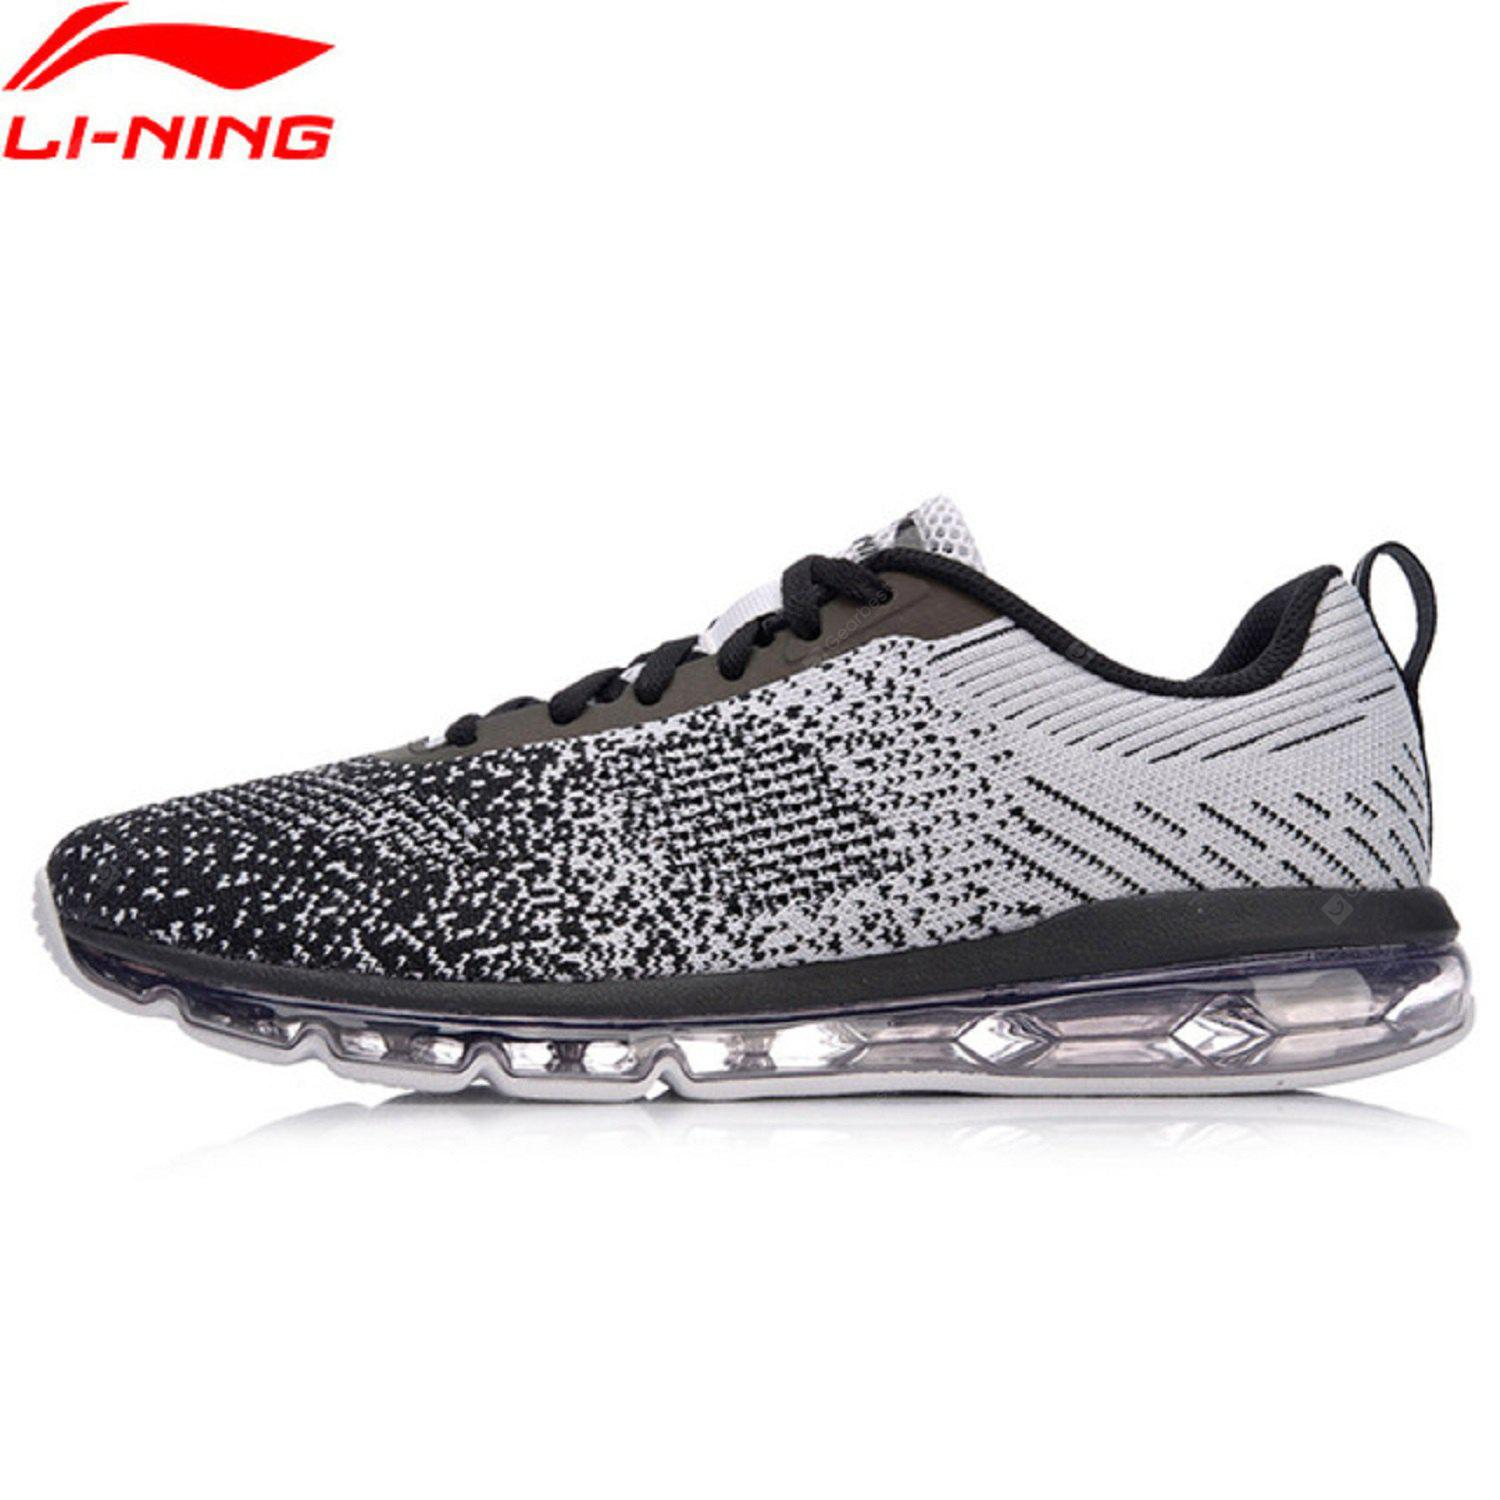 Li-ning Men's BUBBLE MAX  Glory Classical Fashion Leisure Shoes AGCN075-1